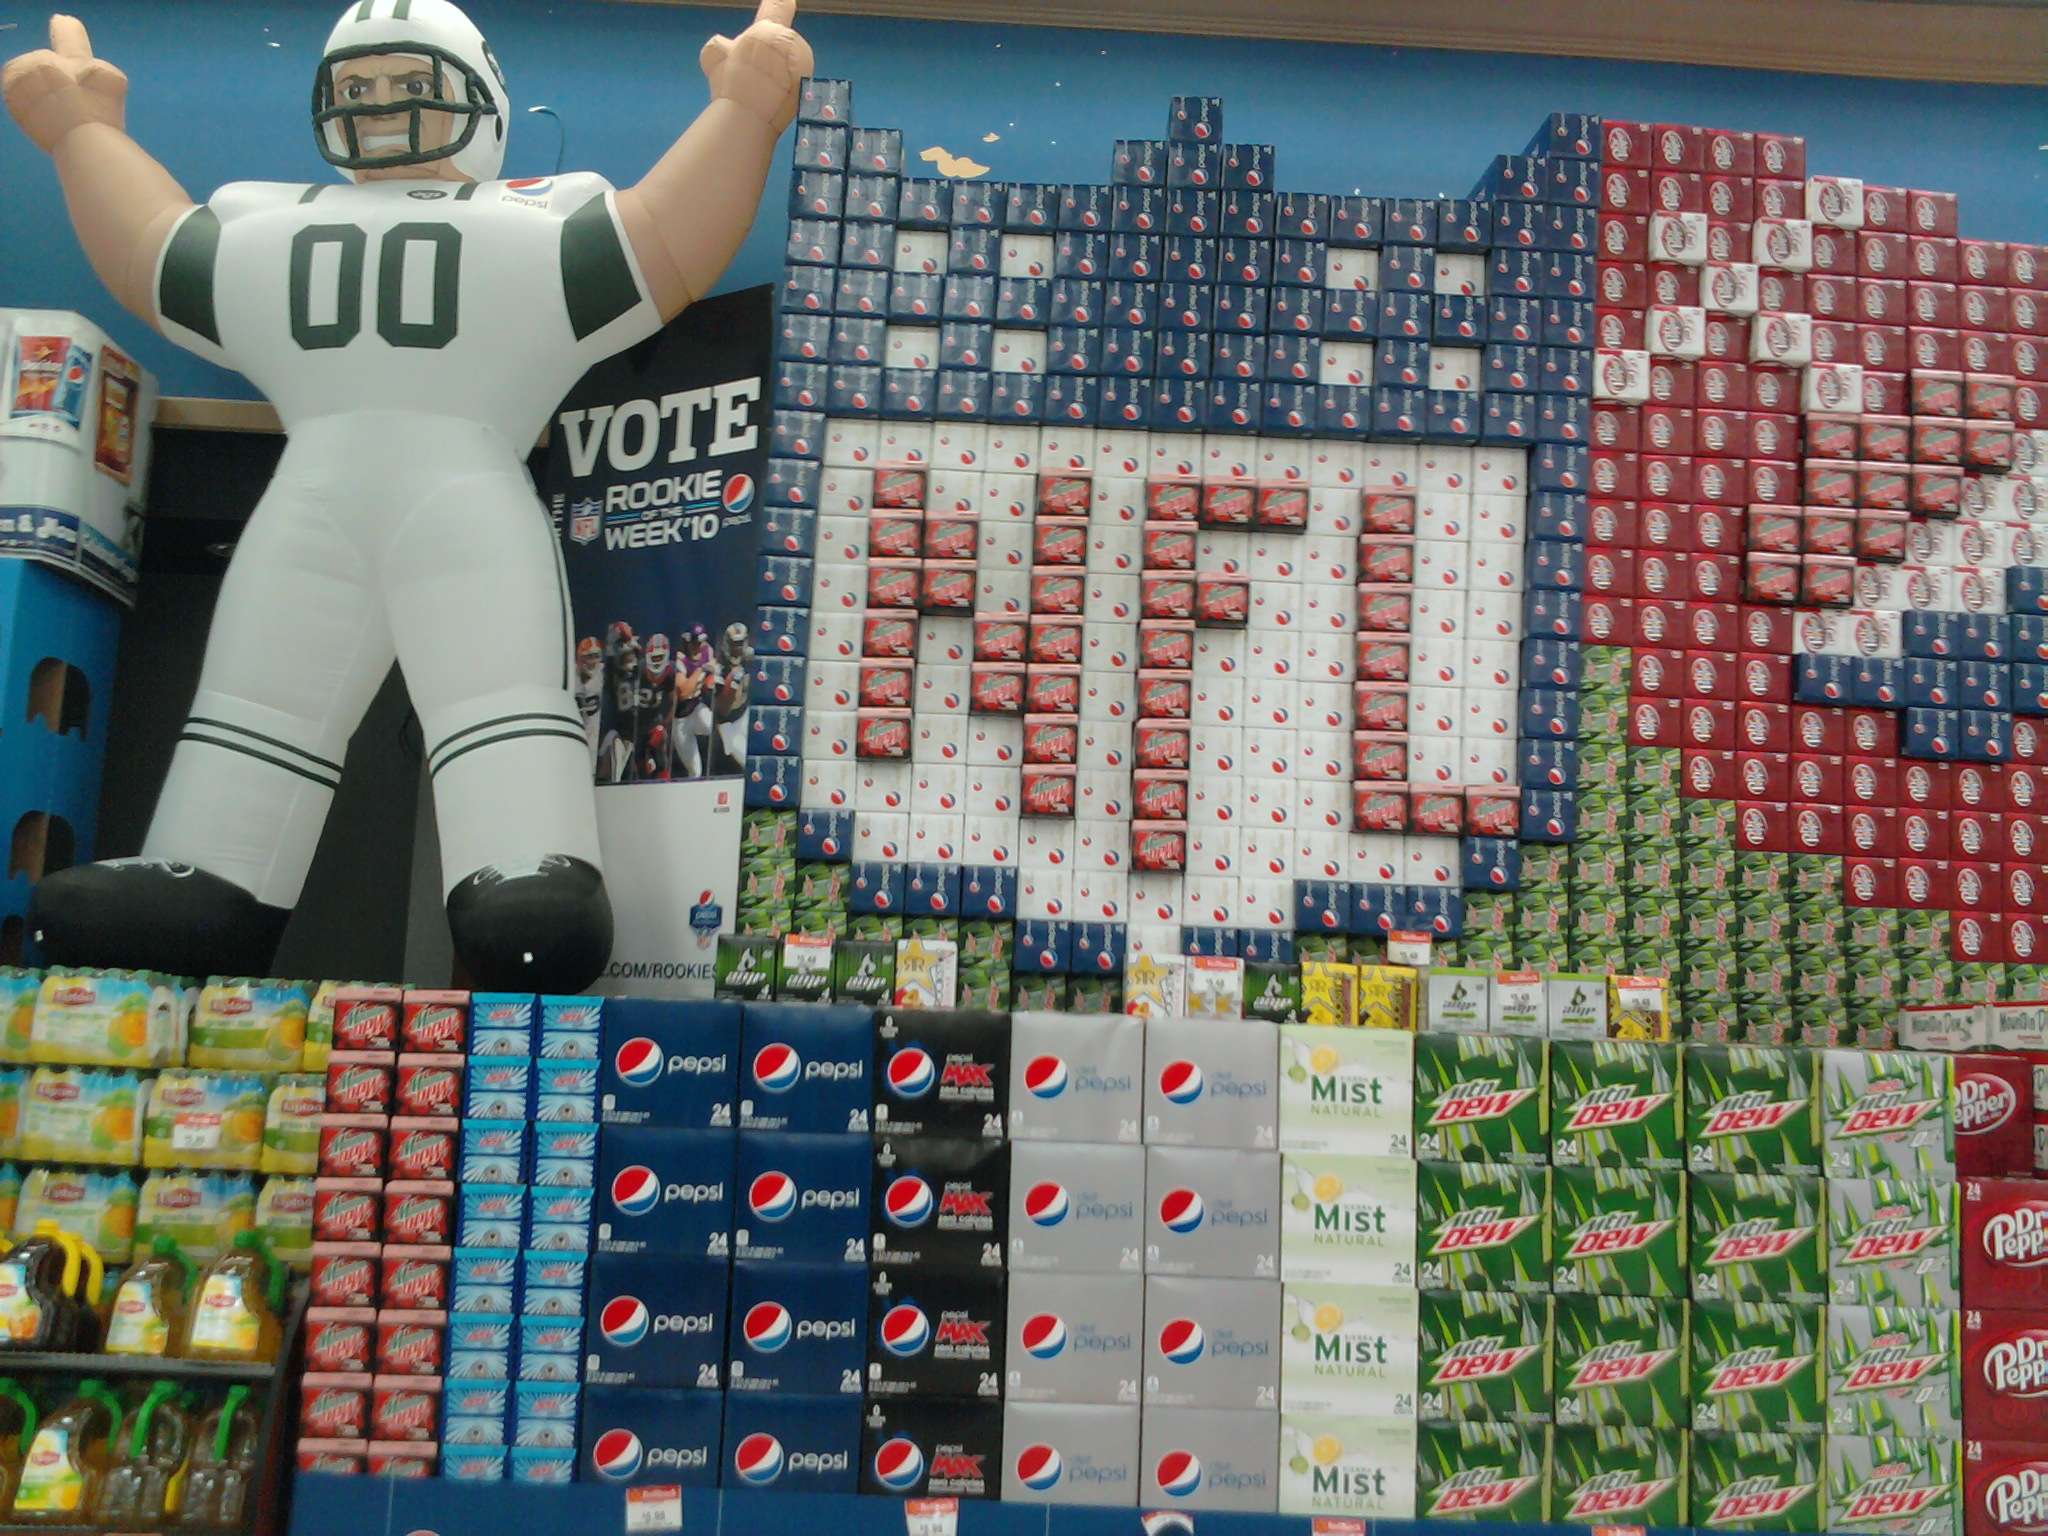 I thought this @pepsi @nfl display was pretty cool.  Flickr  Photo Sharing!